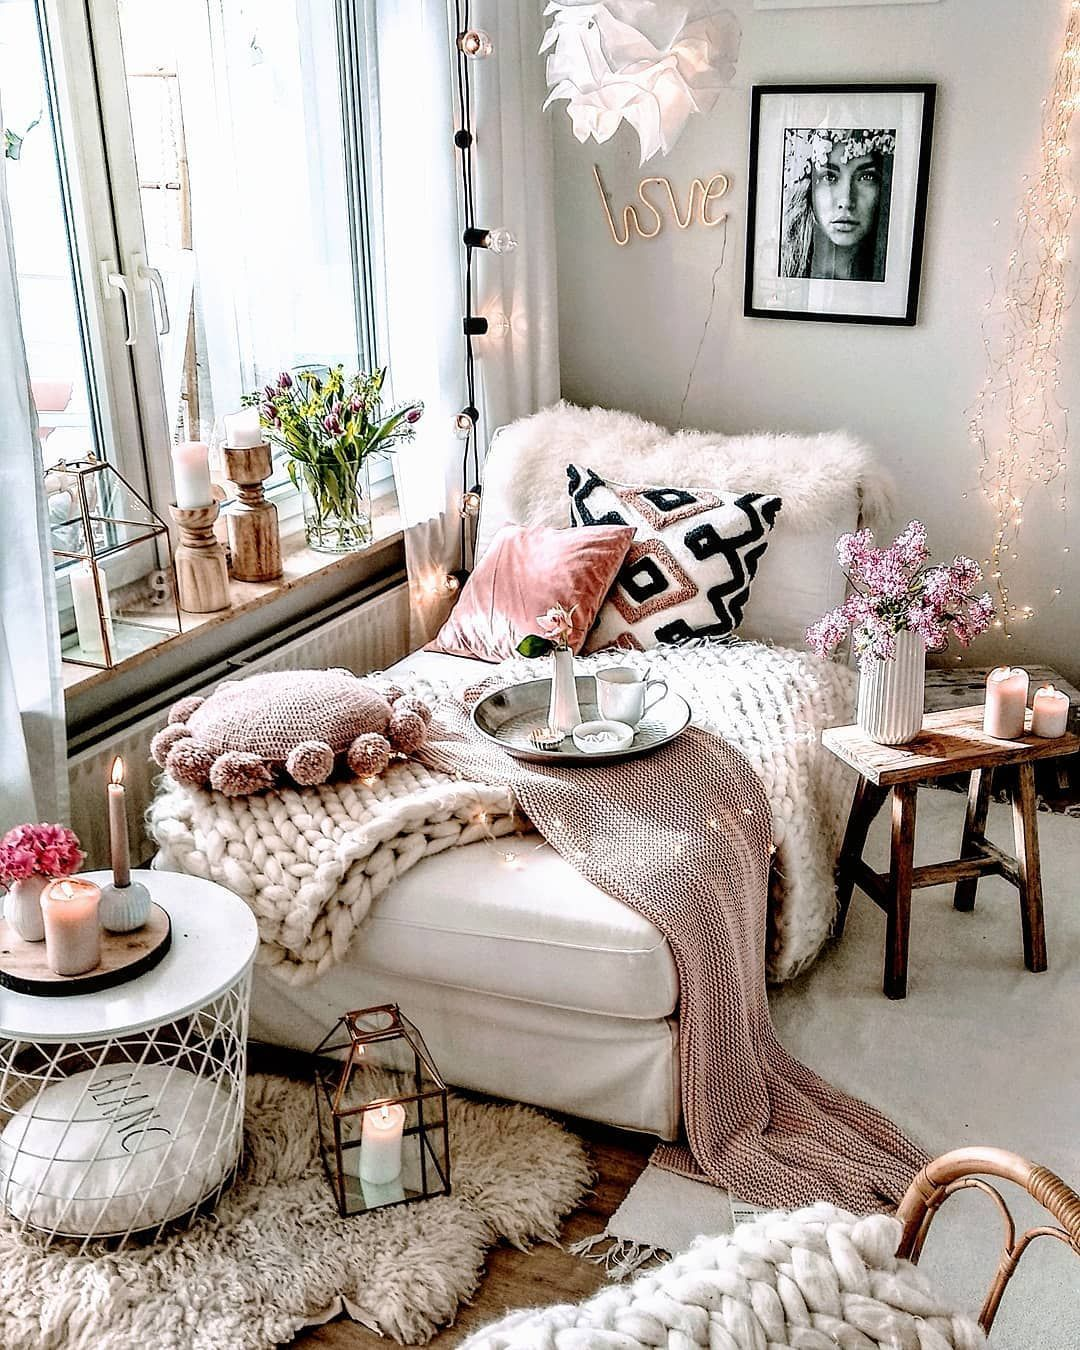 Bohemian Chaise Lounge Decor via @herzenstimme